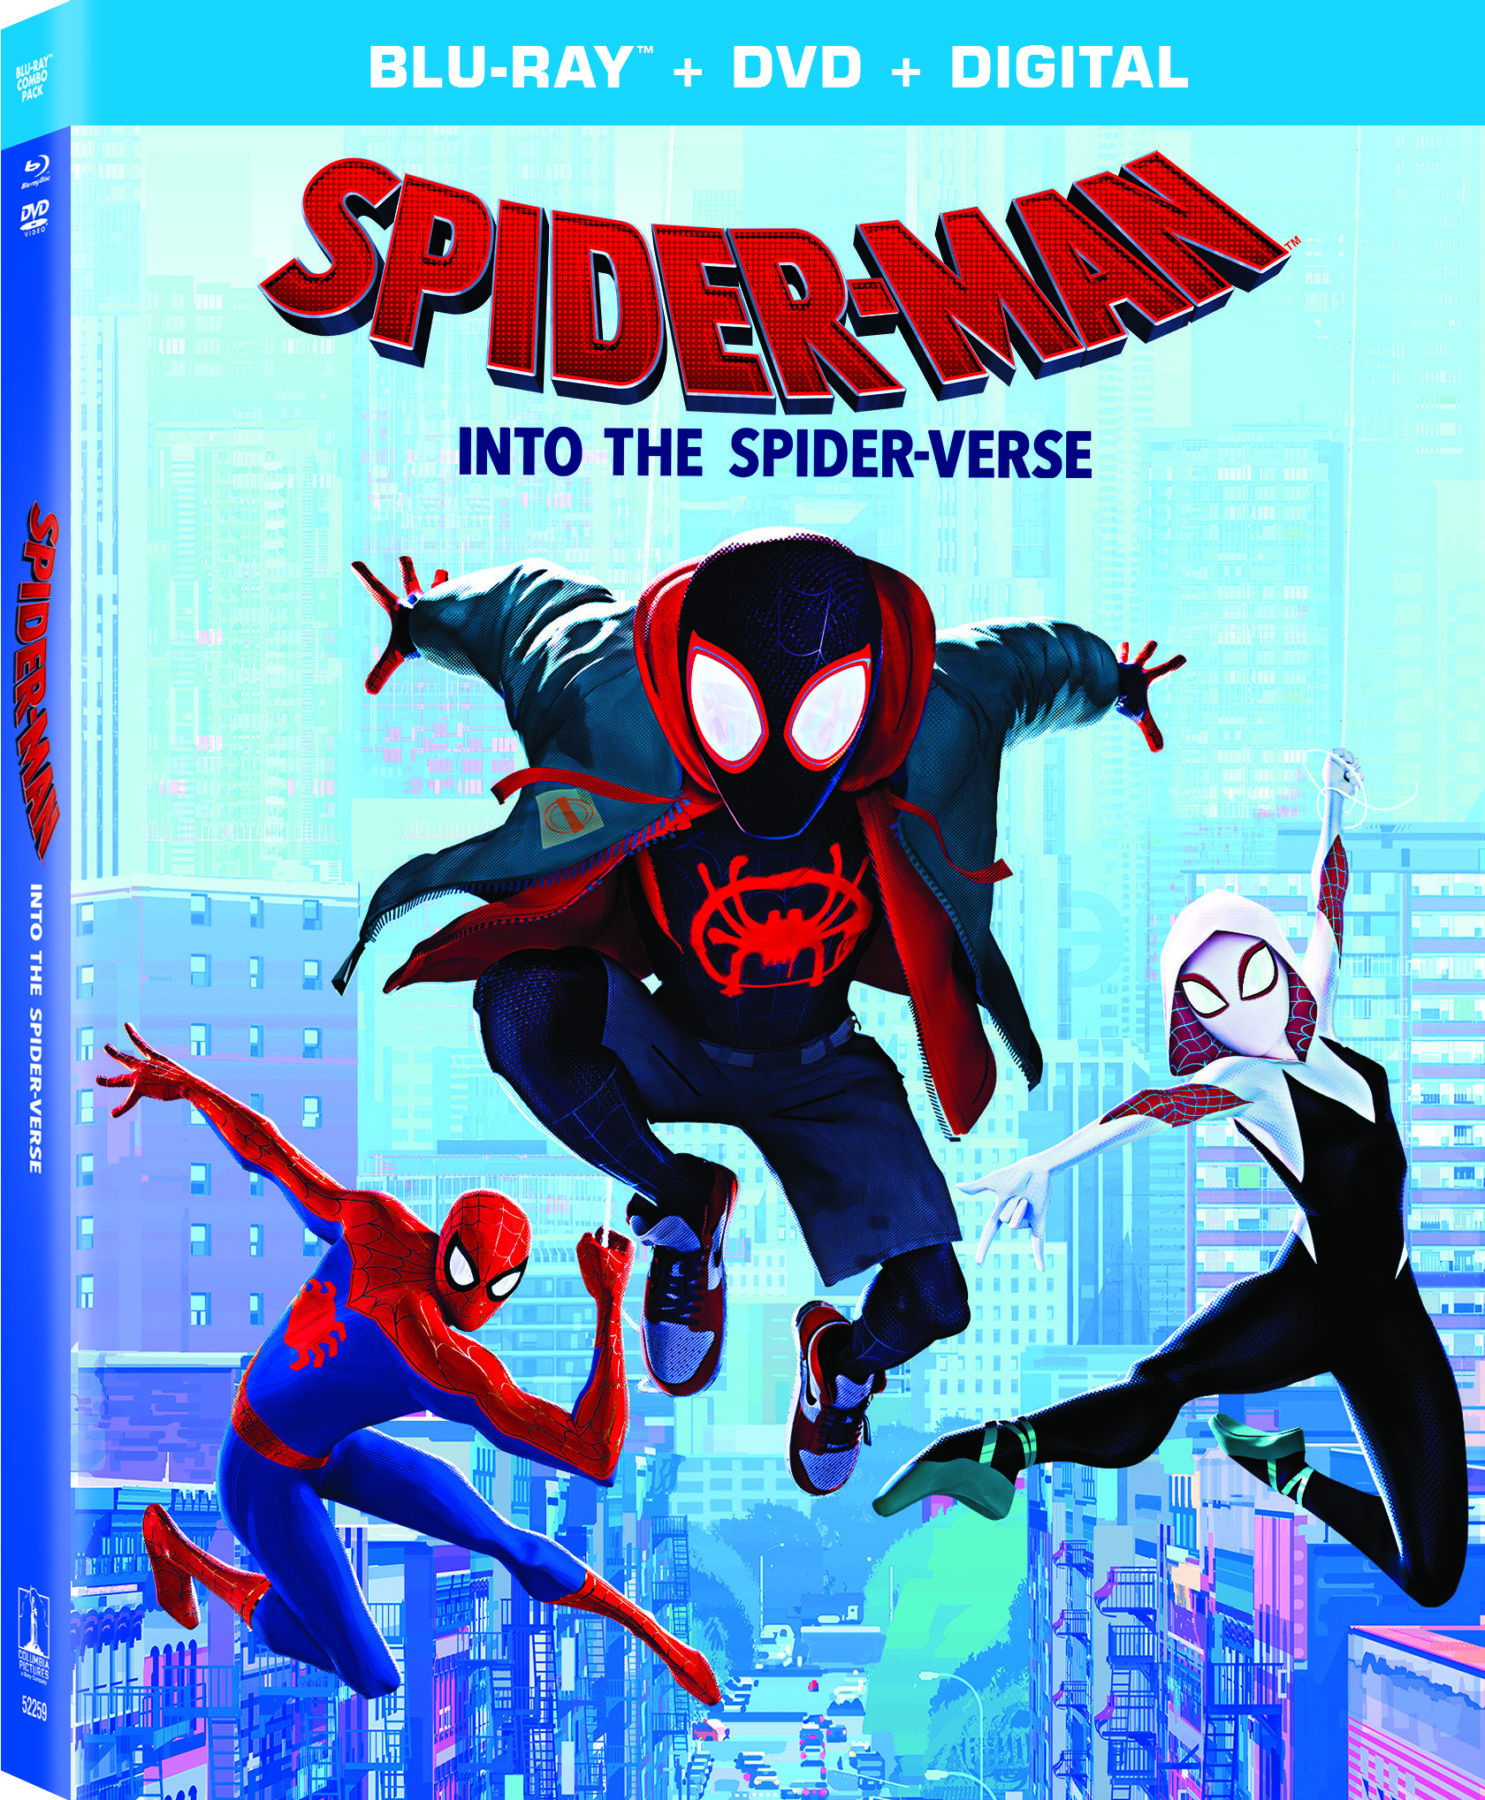 Spider-Man Into The Spider-Verse 4K Ultra Hd, Blu-Ray And Dvd Details And Special -3431